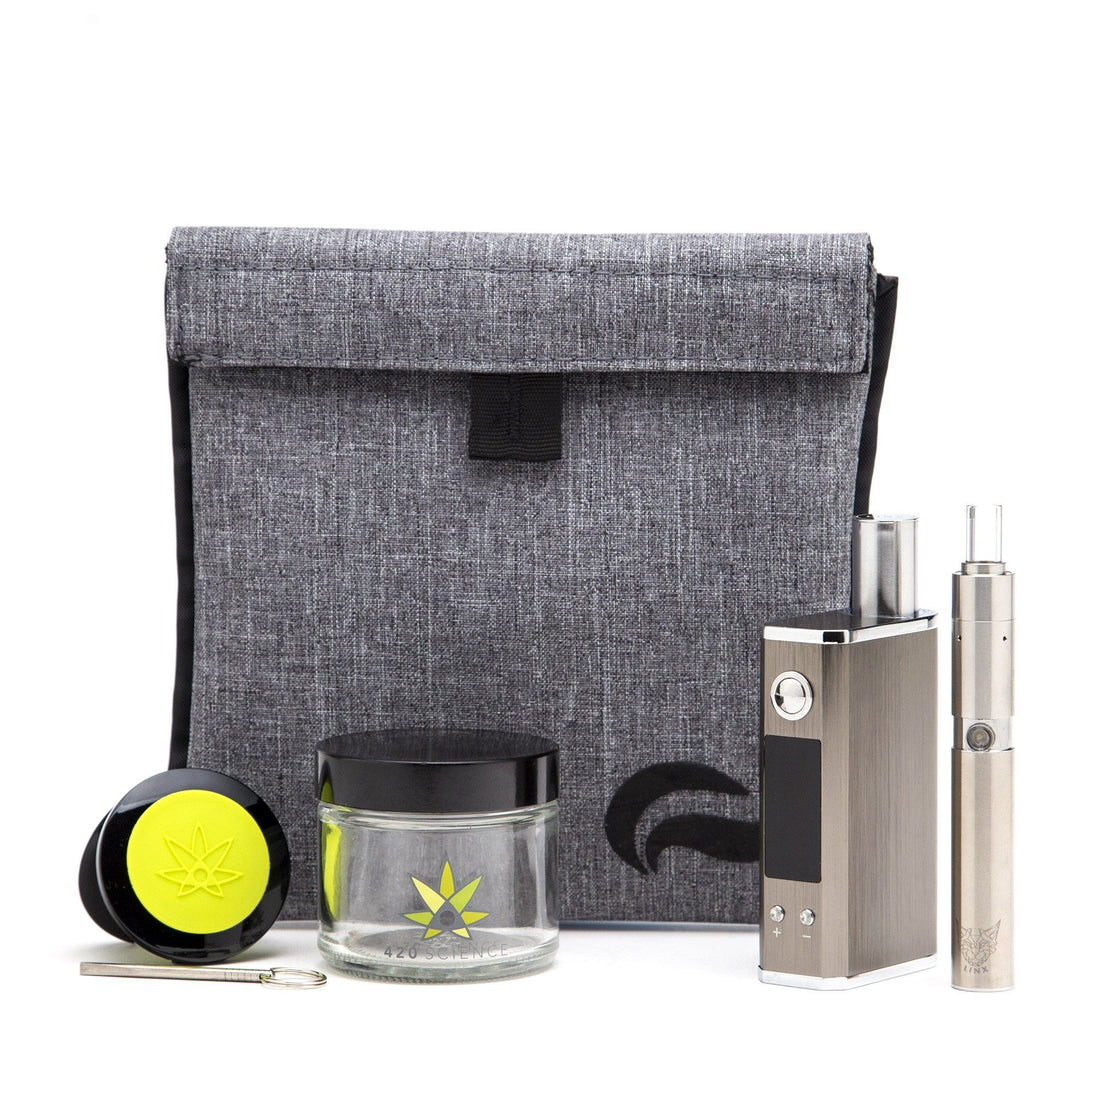 LINX Hypnos Zero & Gaia Vape Special - 420 Science - The most trusted online smoke shop.